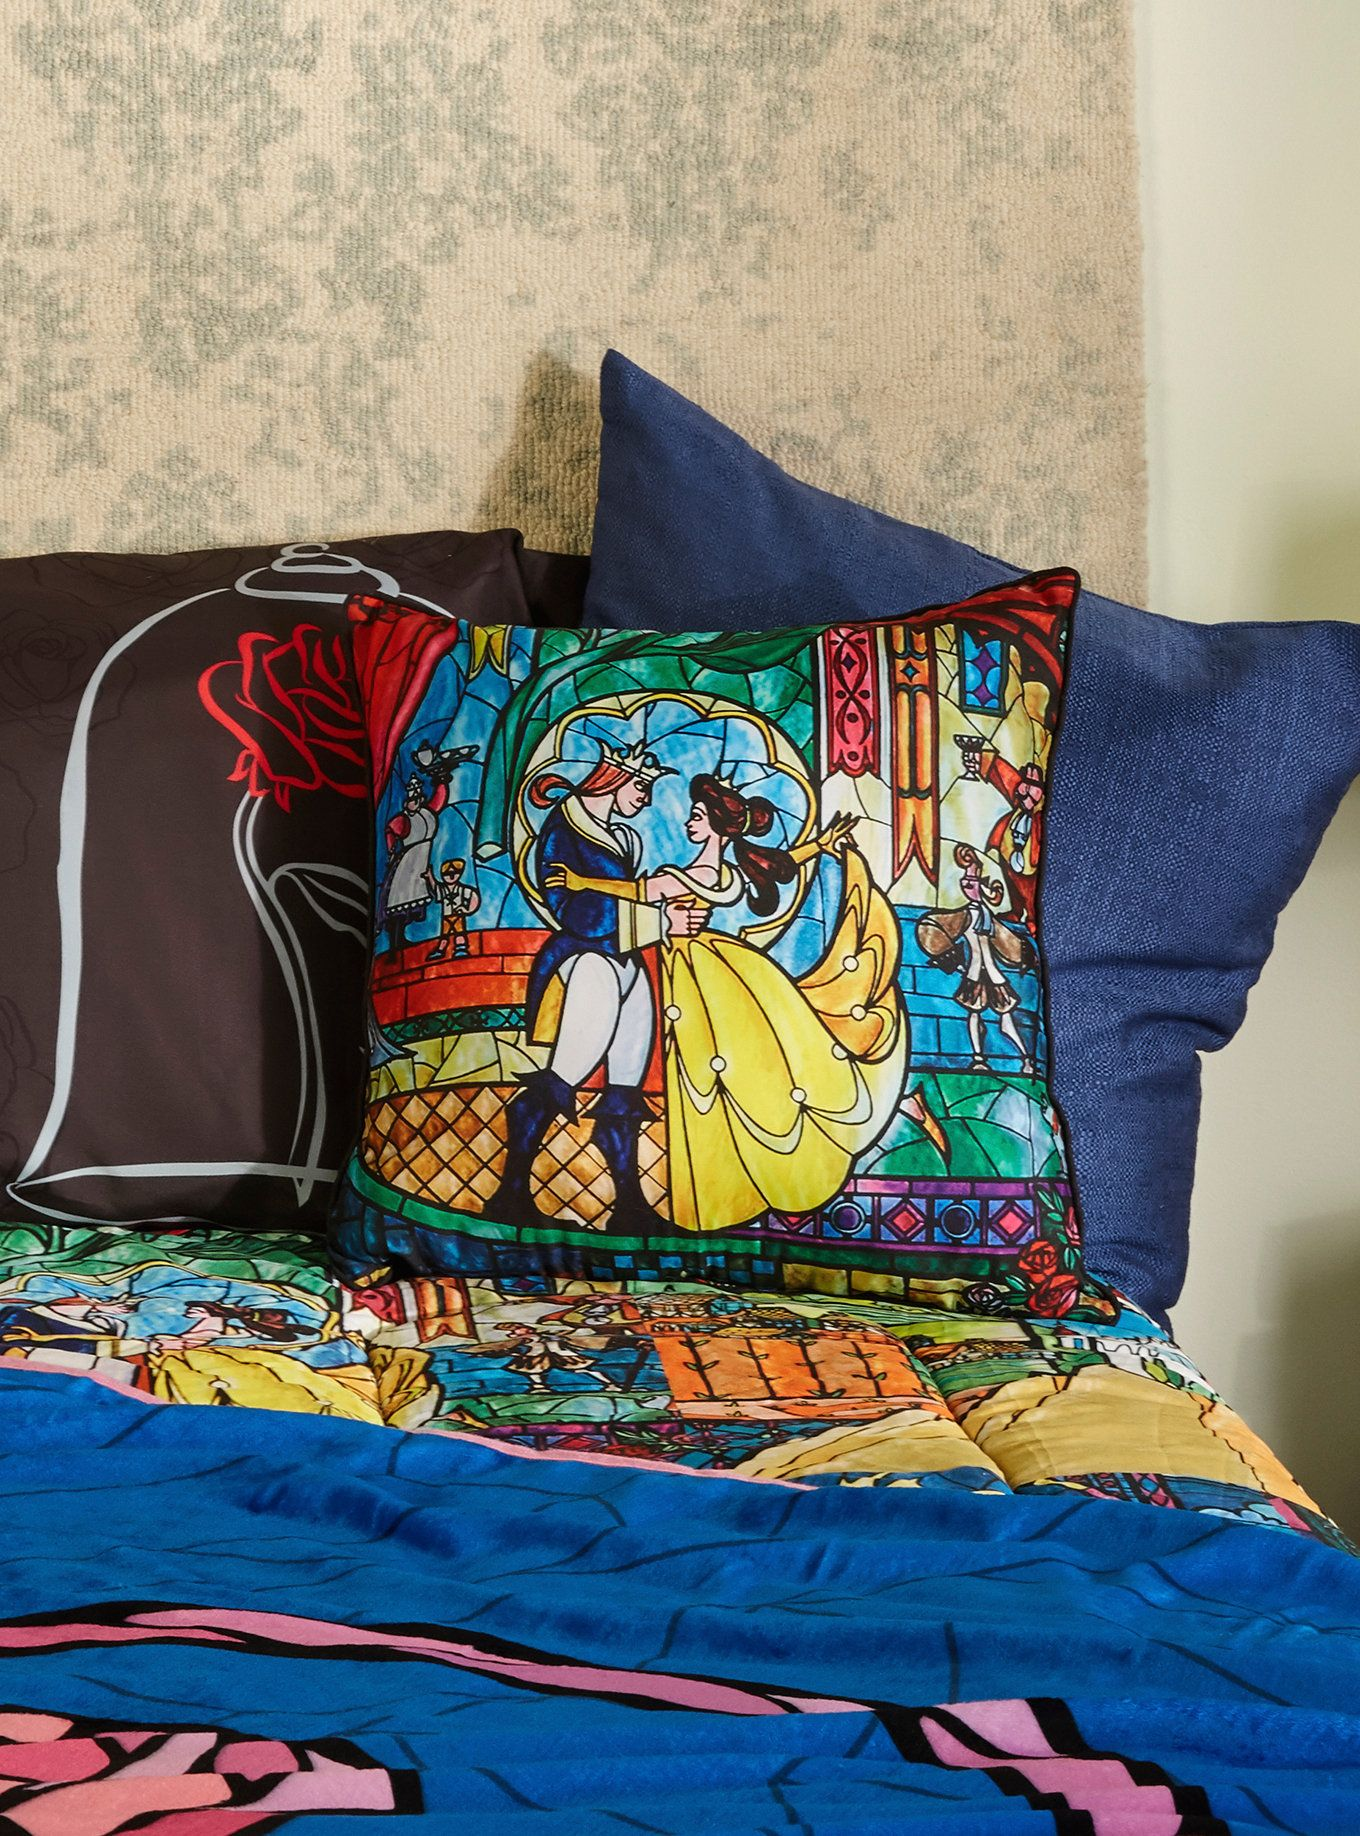 add some color to your castle decor with this square throw pillow from disneys beauty and the beast pillow features a stained glass style design of belle